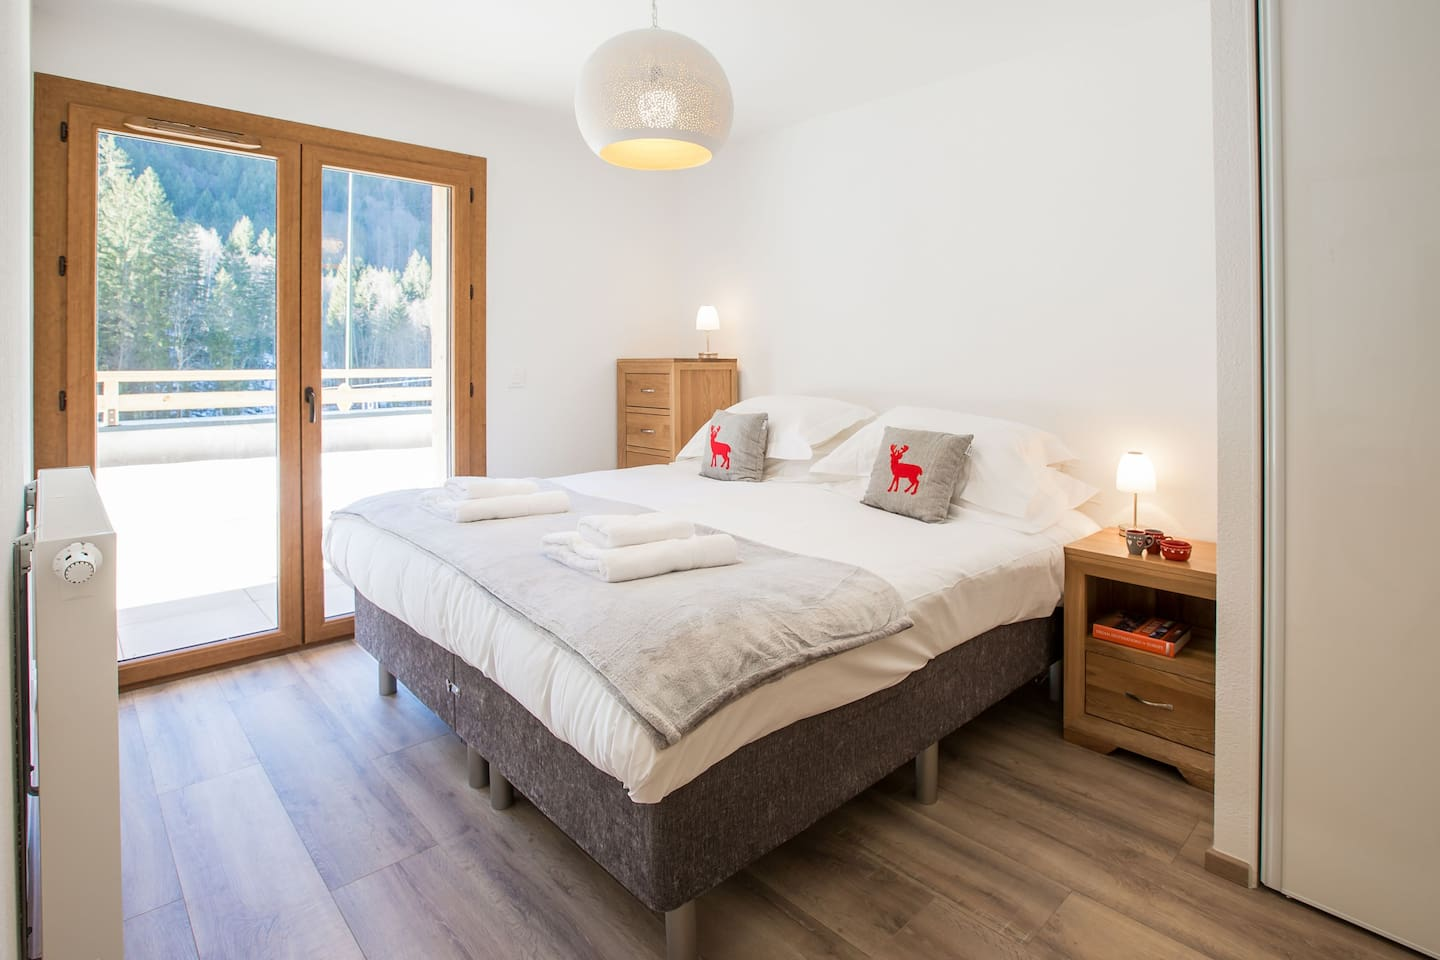 Bedroom 1 - double or twin beds with ensuite shower room